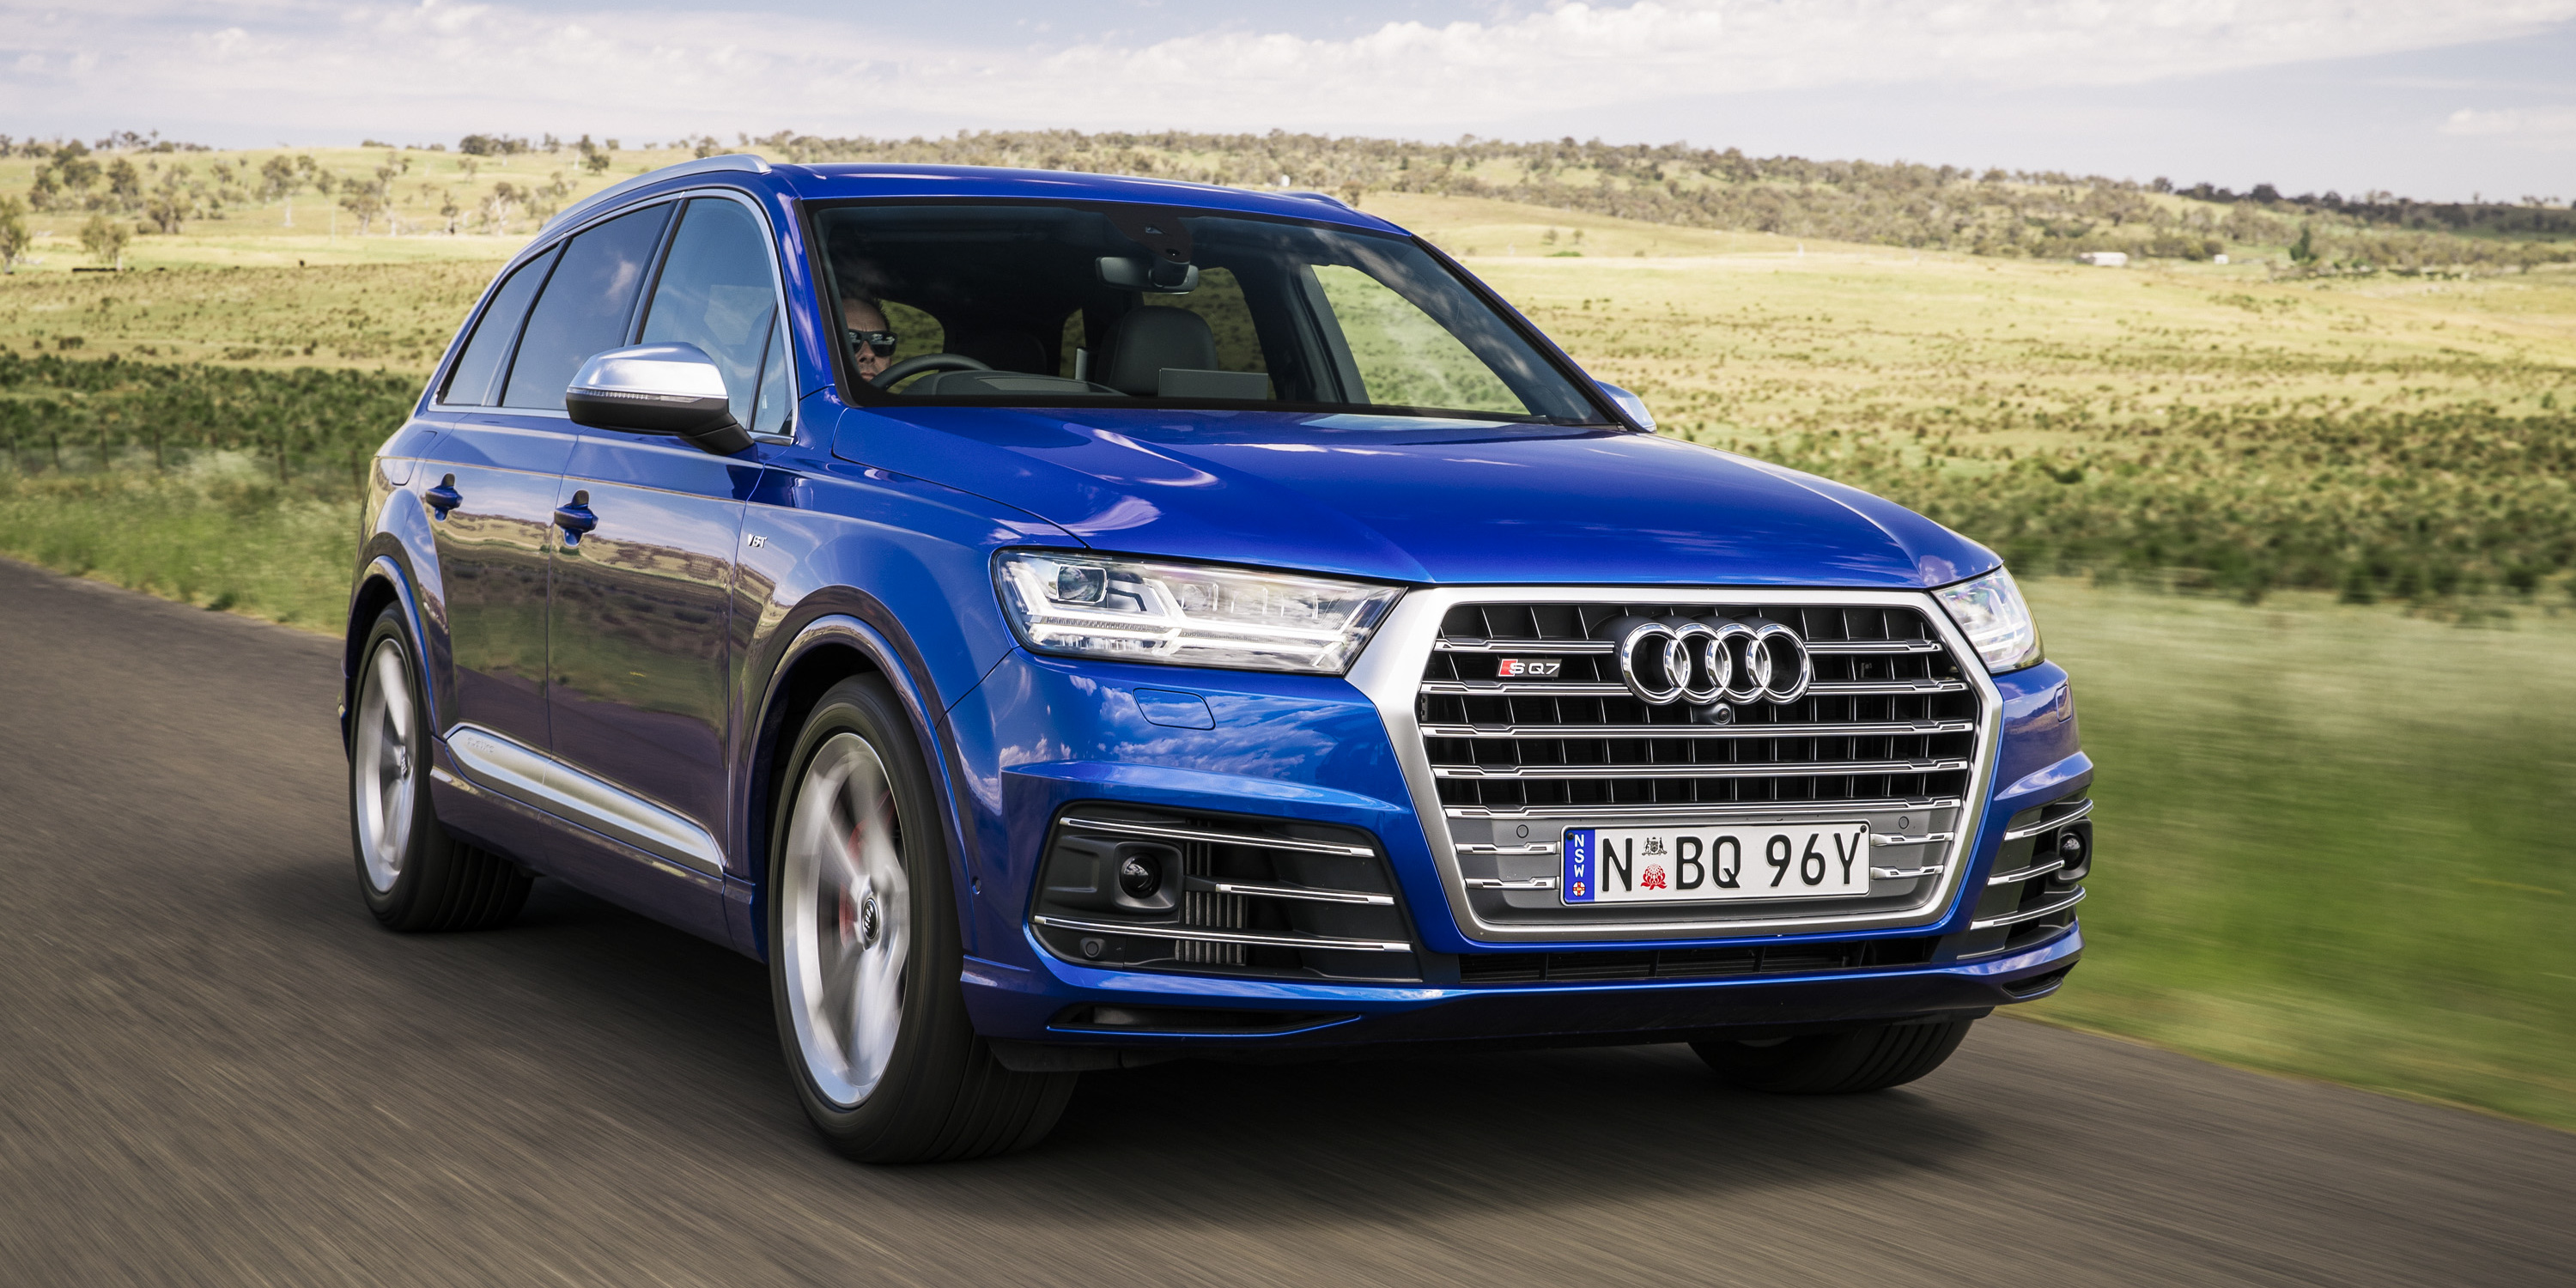 2017 audi sq7 tdi pricing and specs photos caradvice. Black Bedroom Furniture Sets. Home Design Ideas